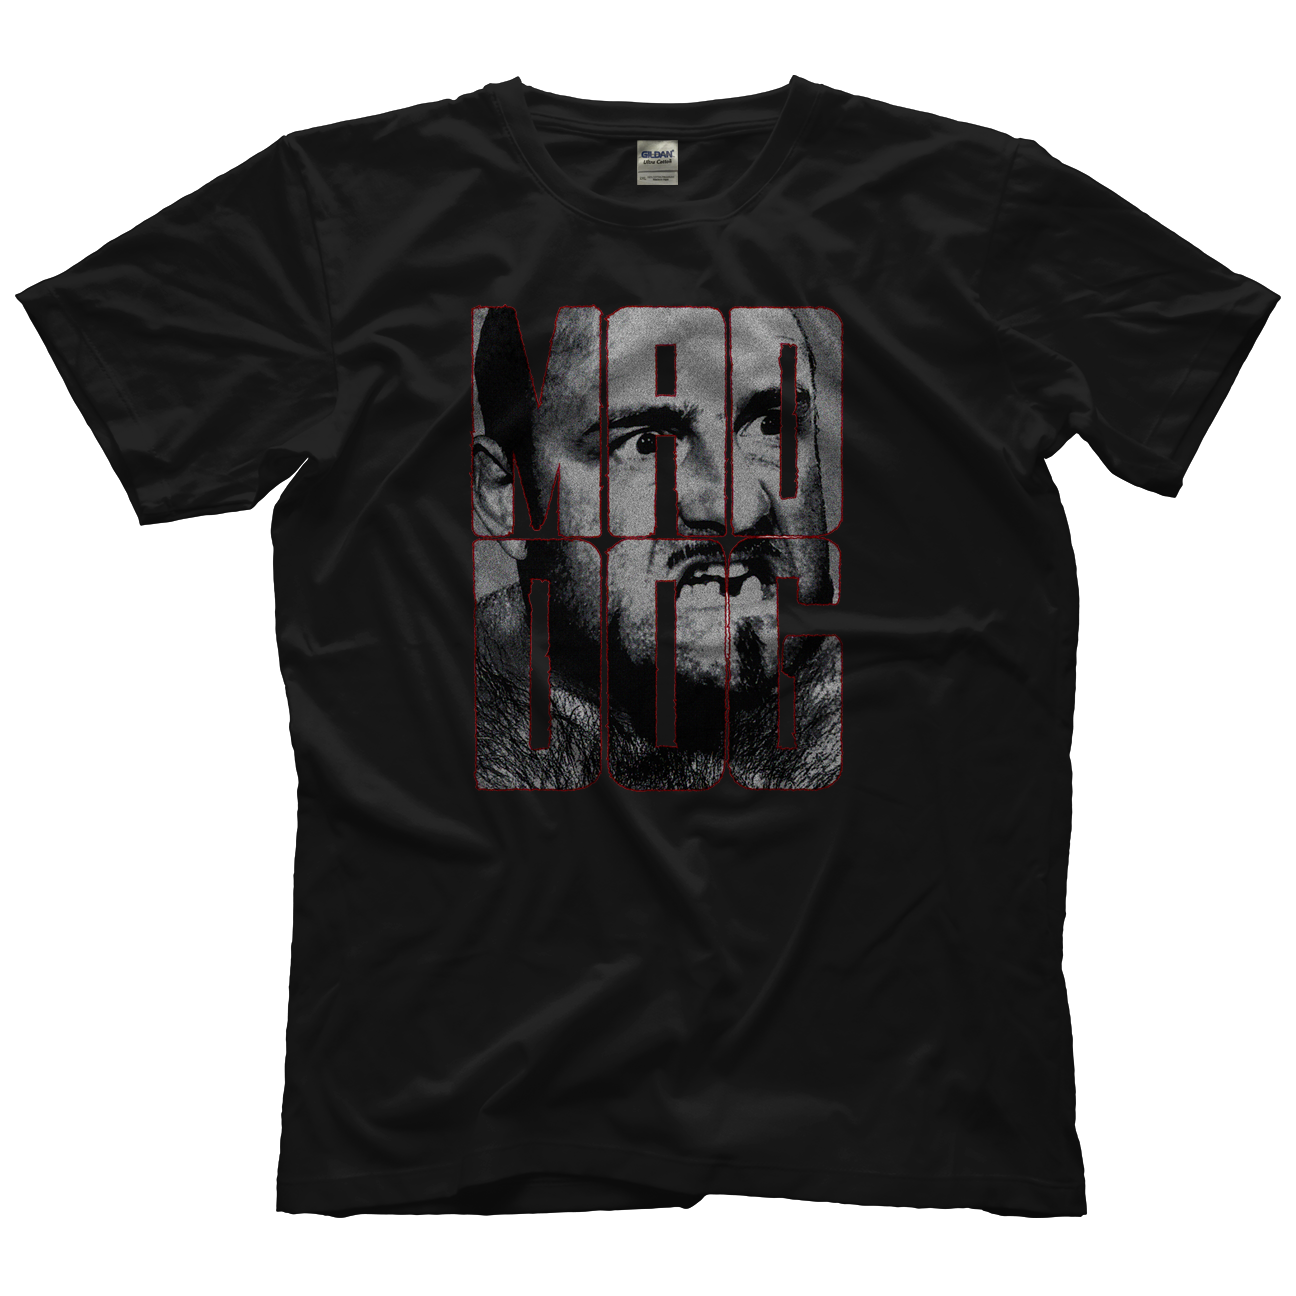 Mad Dog Vachon Noise shirt